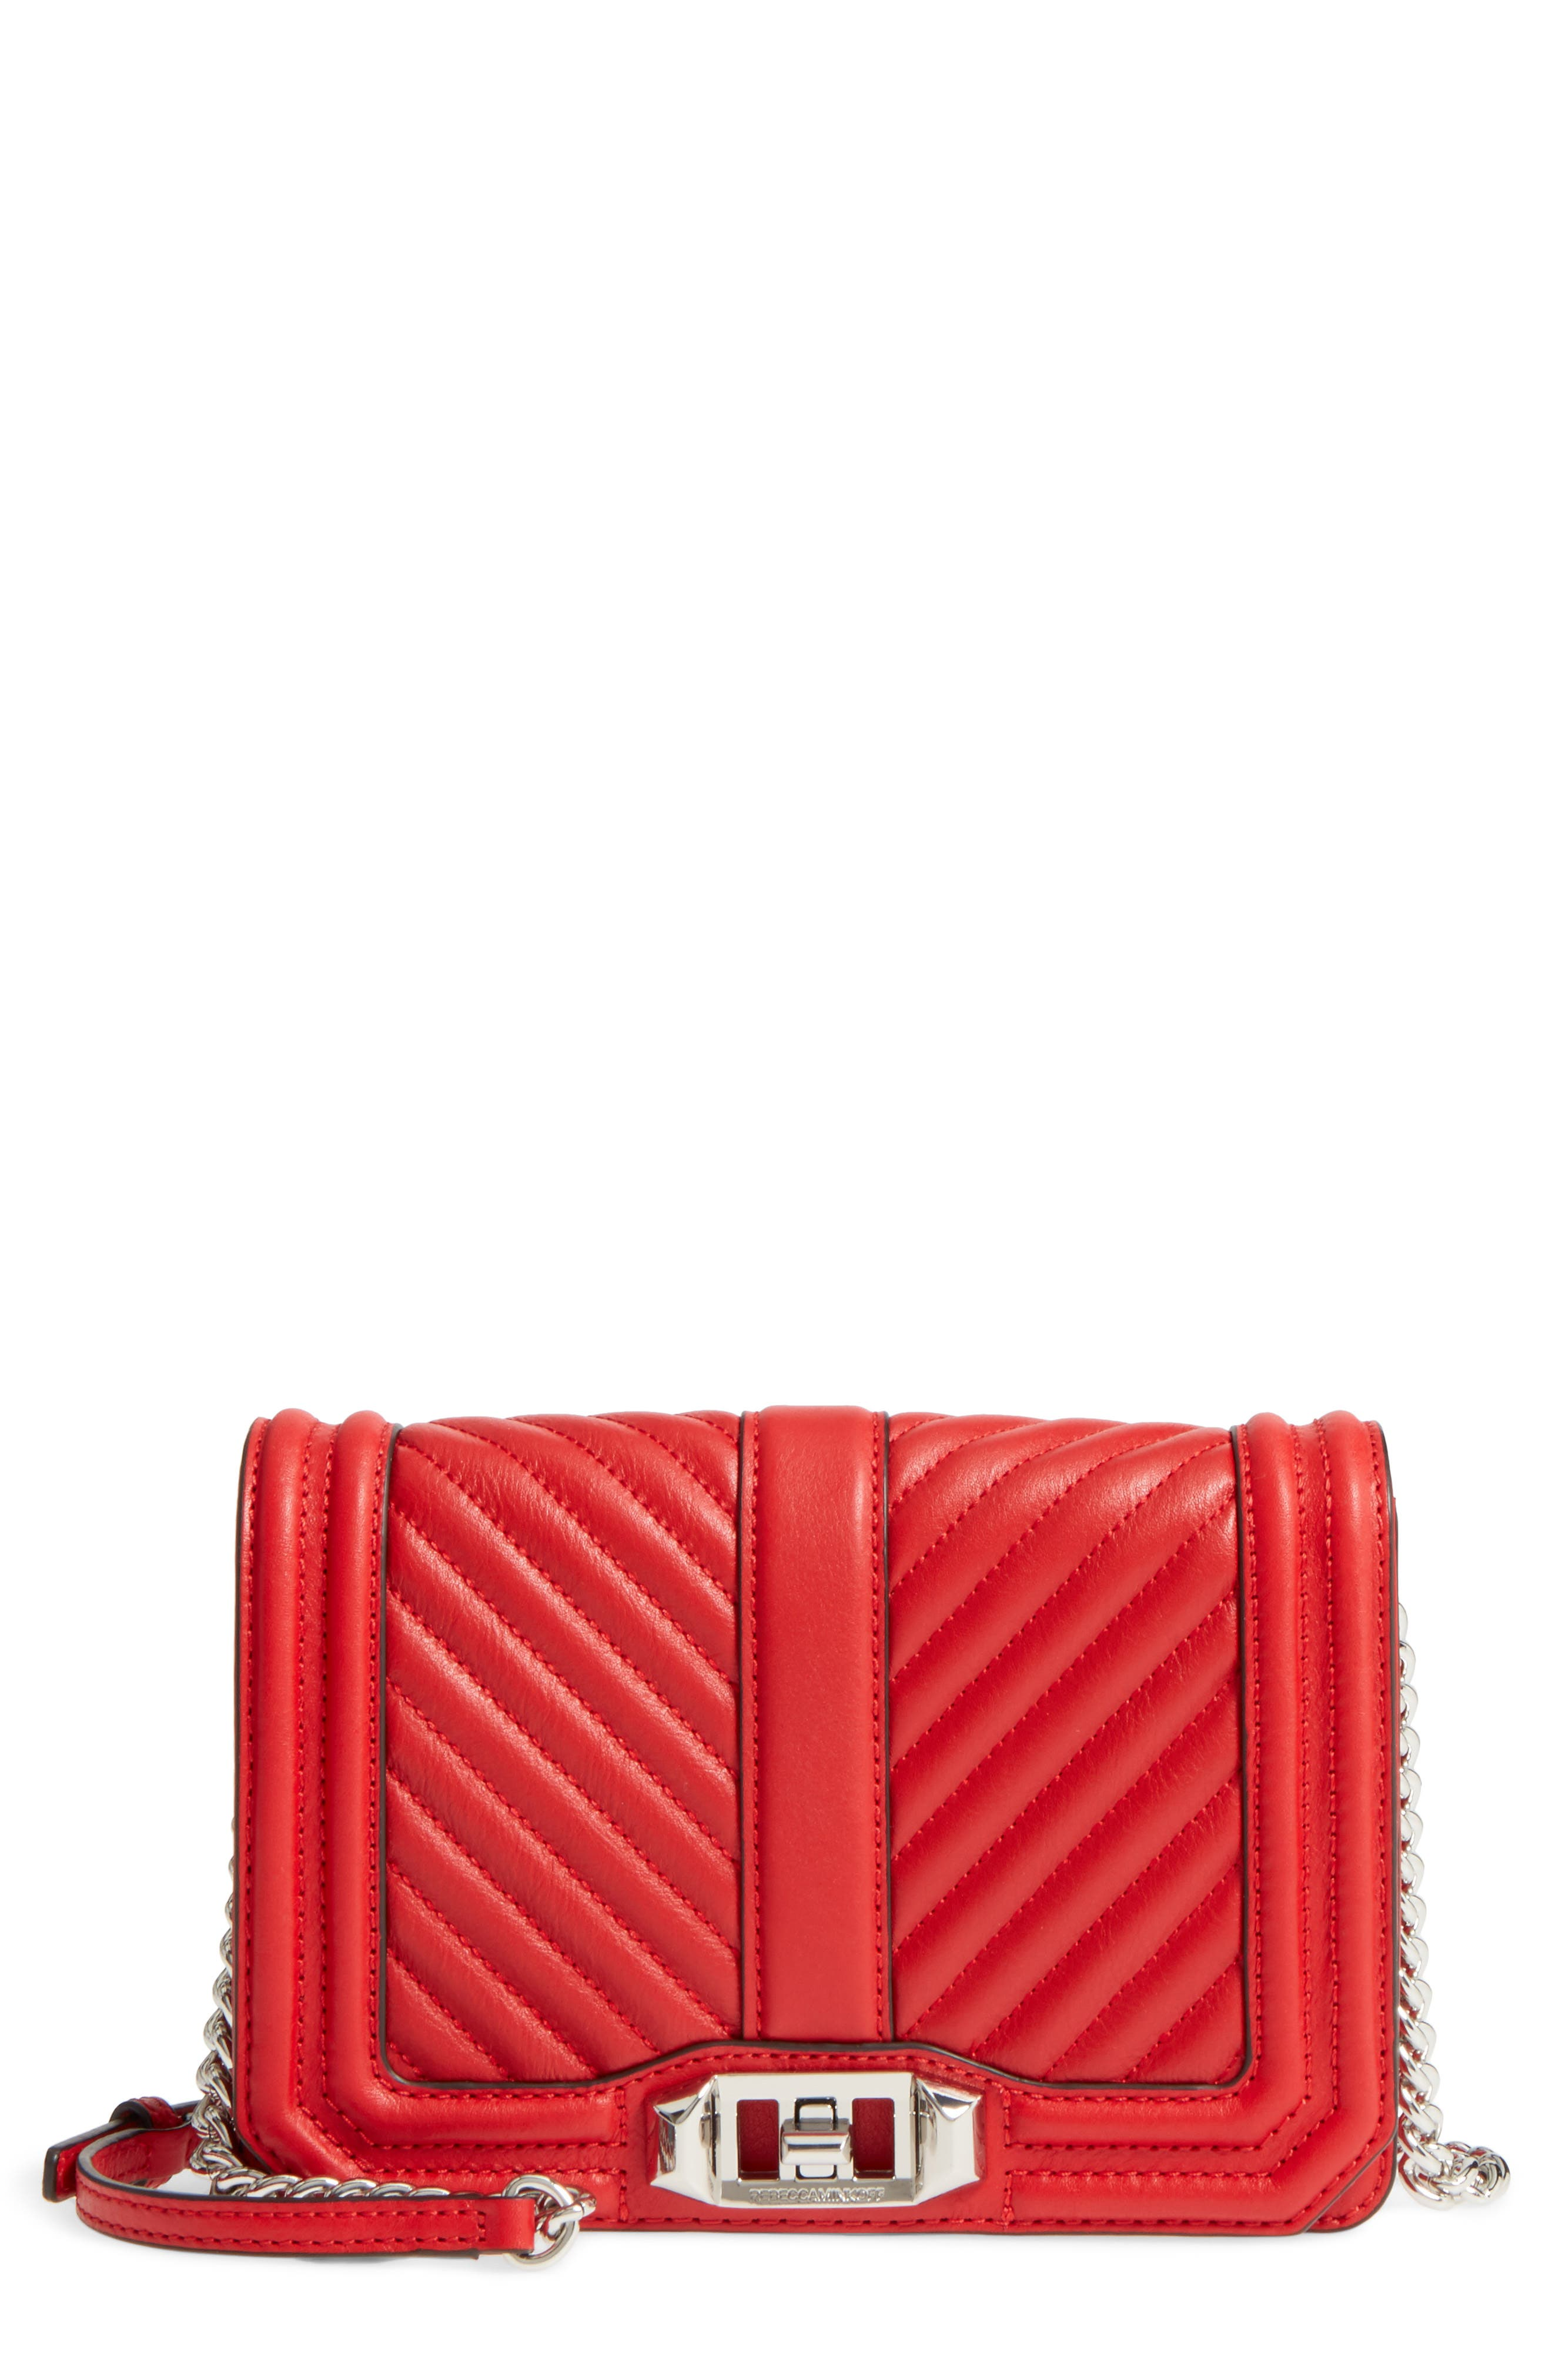 Alternate Image 1 Selected - Rebecca Minkoff Small Love Quilted Leather Crossbody Bag